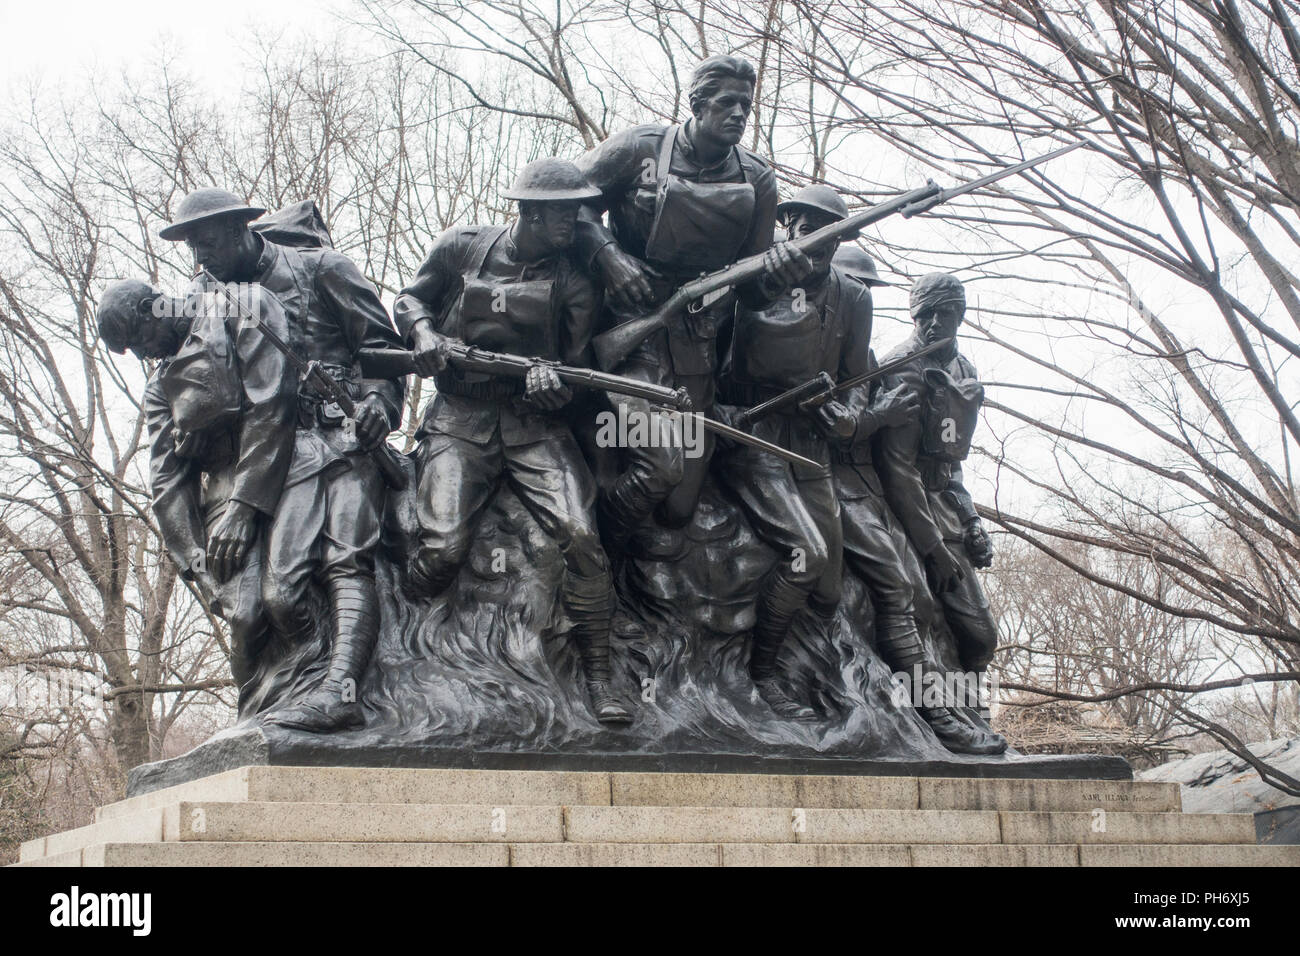 107th Infantry memorial in Central park Manhattan New York City - Stock Image